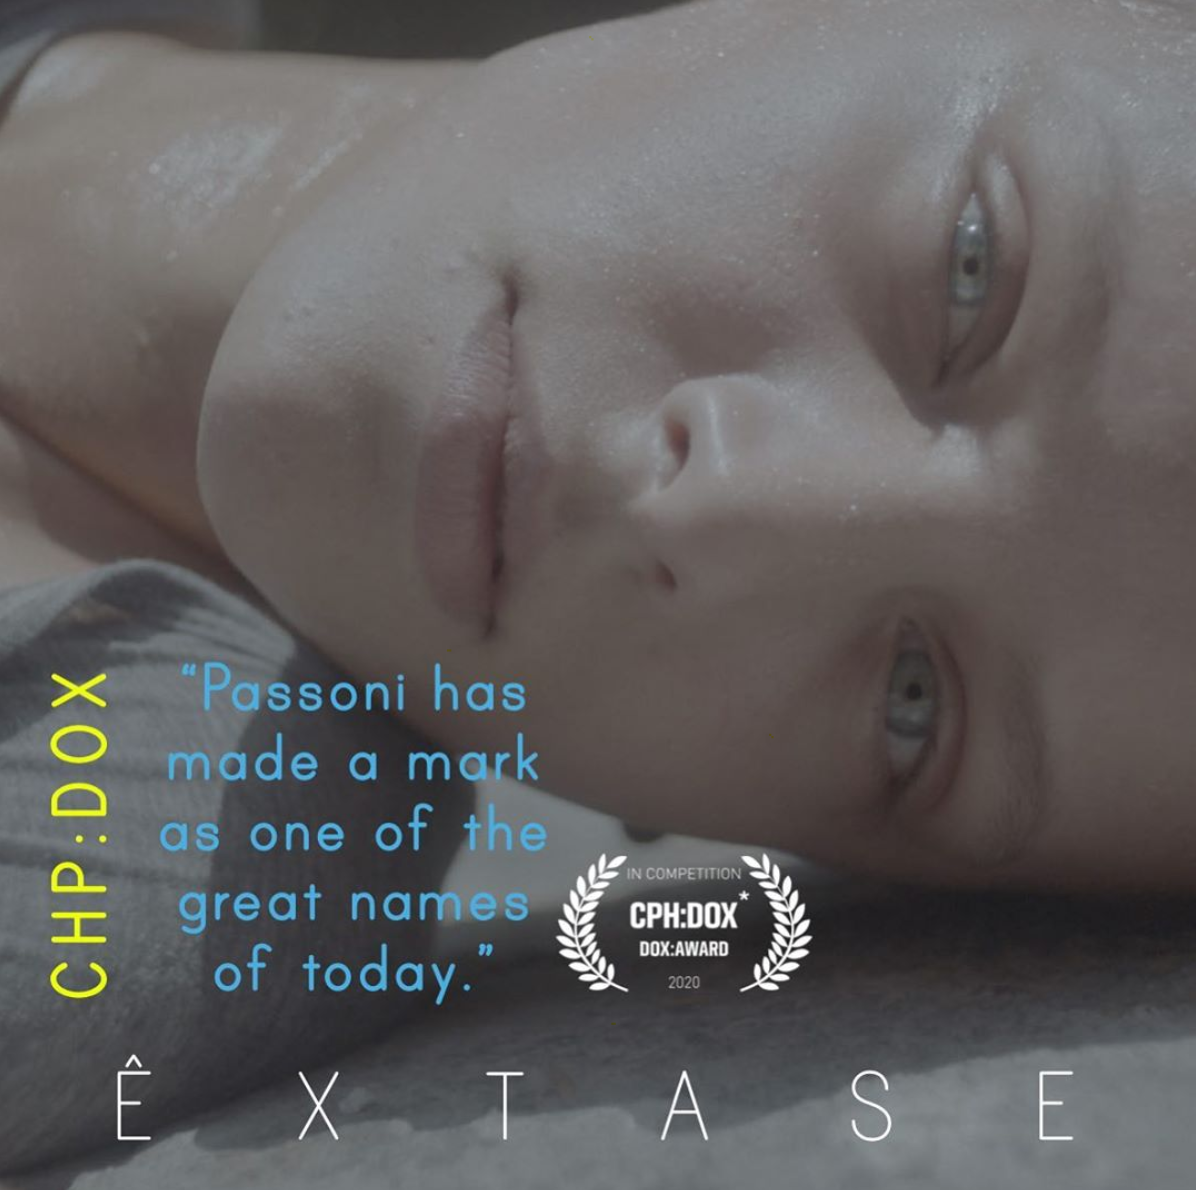 ÊXTASE: a feature doc released to rave reviews in a very similar condition to its main character - isolated from other bodies.